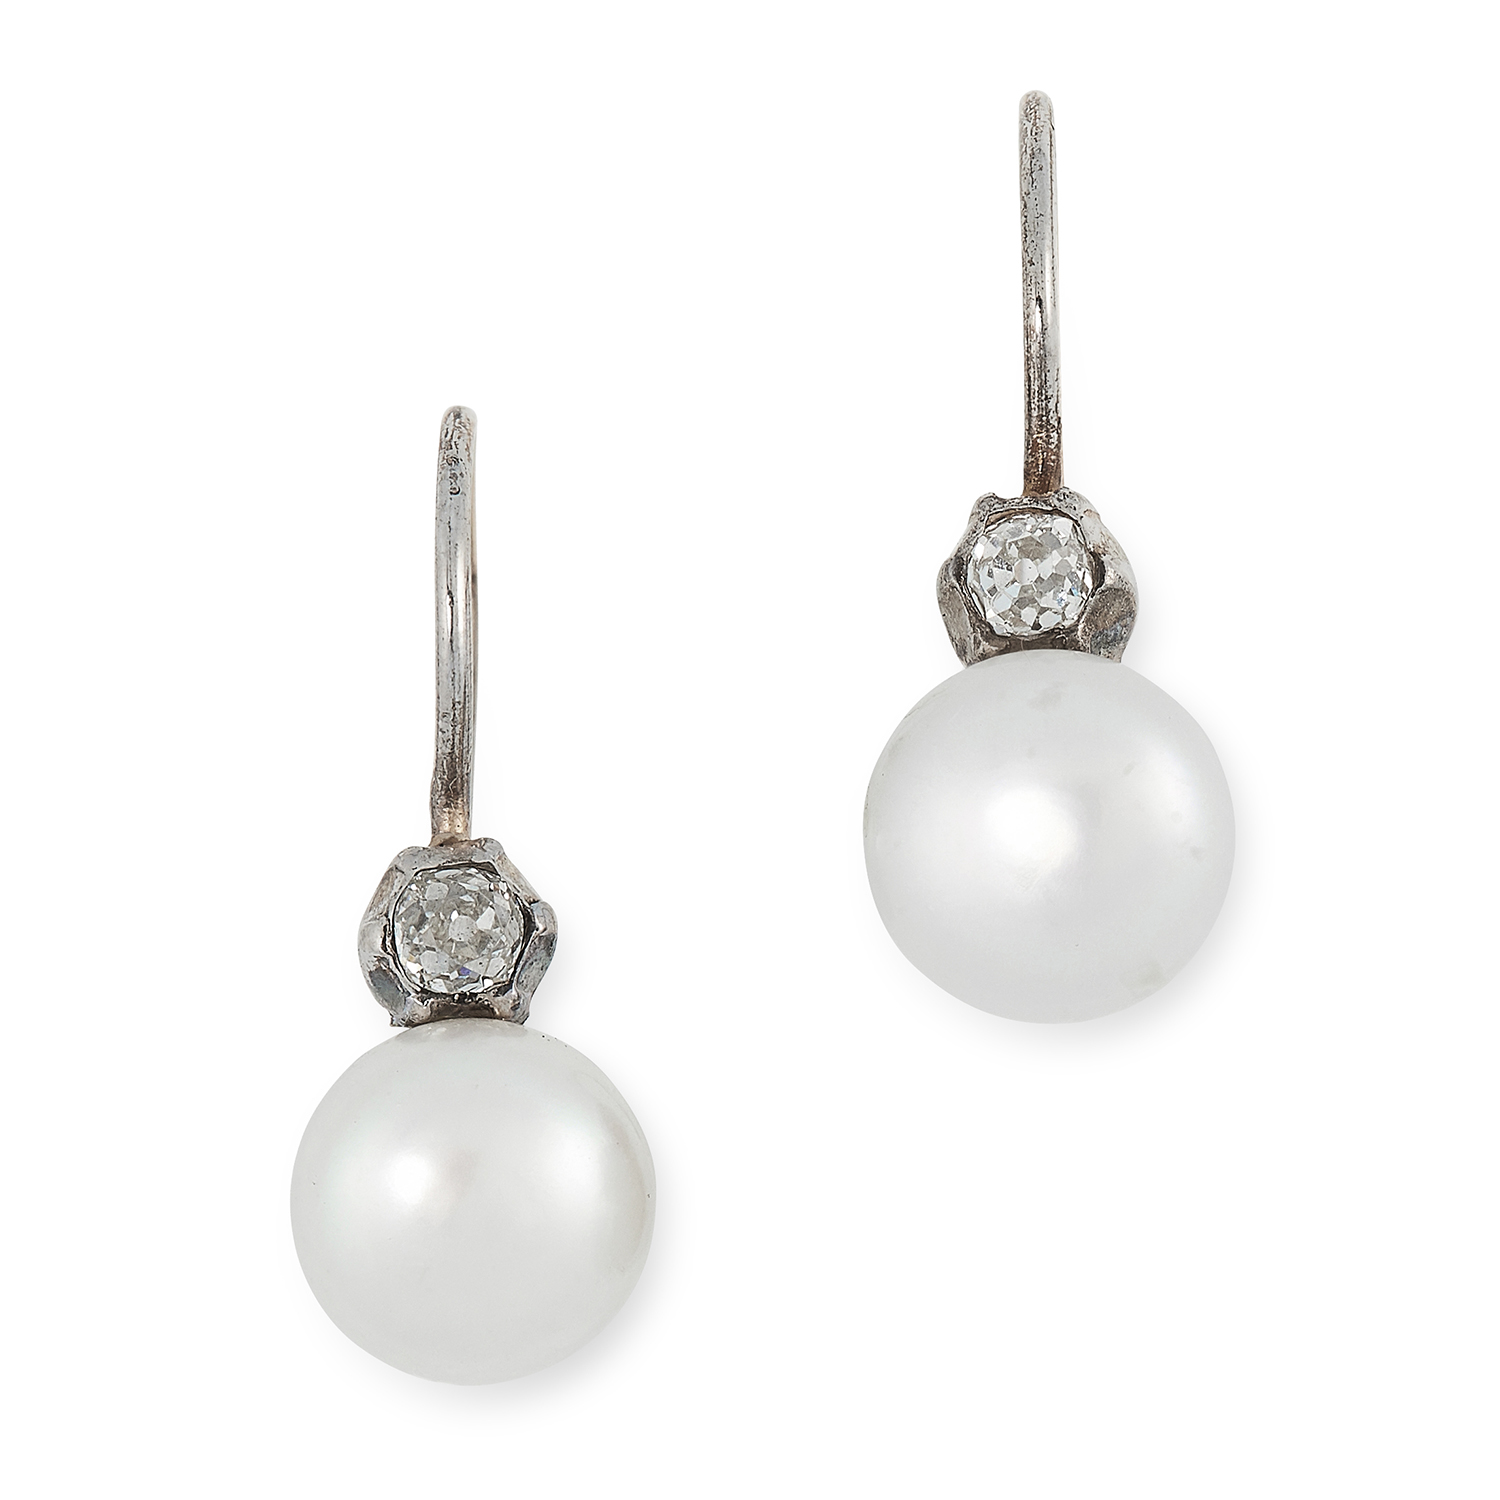 DIAMOND AND PEARL EARRINGS each comprising of an old cut diamond suspending a pearl, 2cm, 2.4g.